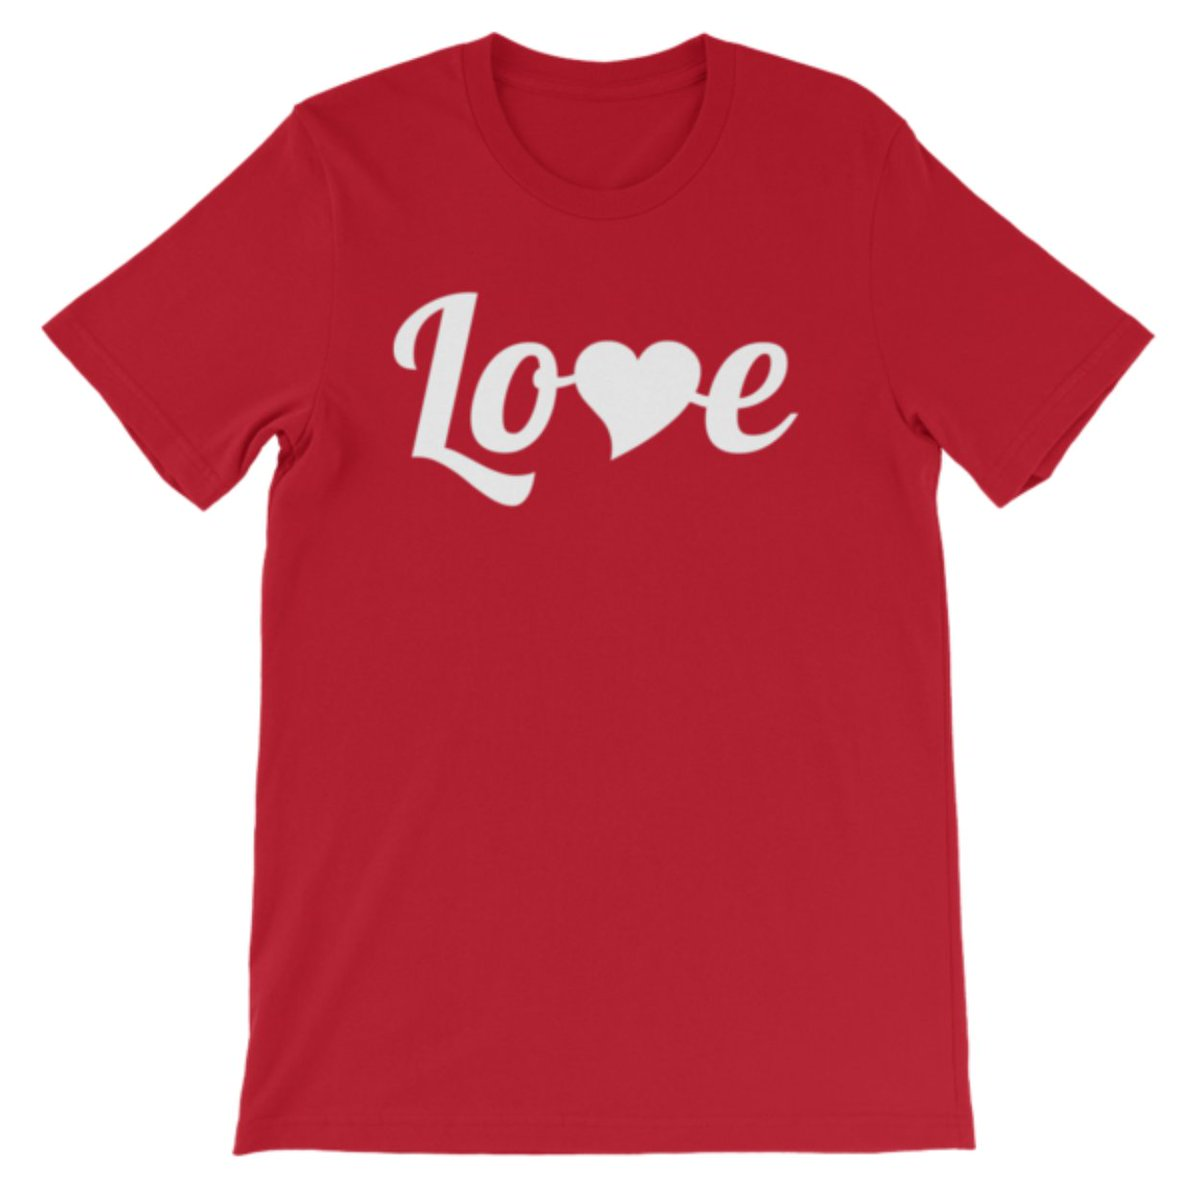 Get your #valentine a fun gift this year! . https://t.co/FkOc5BLaFC https://t.co/KypIiOUsws . #allographictees #ValentinesDay #ValentinesDay2019 #vday #VDAY19 #ValentinesDayGift #valentinesdaygifts #valentines #bemyvalentine #valentinesgiftideas #valentinesgifts #lovewins #love https://t.co/vegqxBtRaT